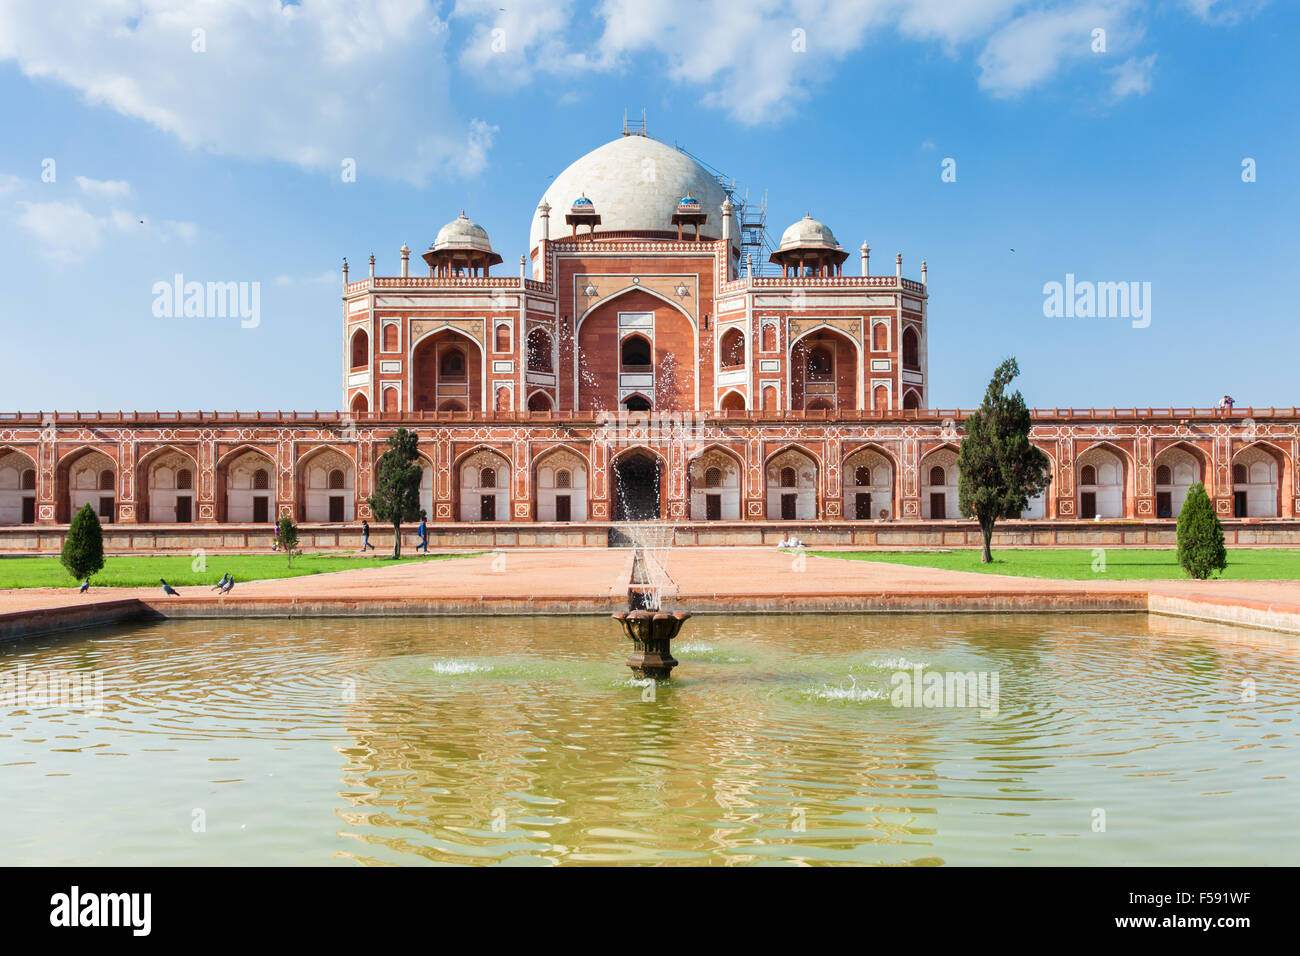 Delhi, India - 19 September, 2014:  Daytime view of Humayun's Tomb, UNESCO World Heritage on 19 September 2014, Stock Photo